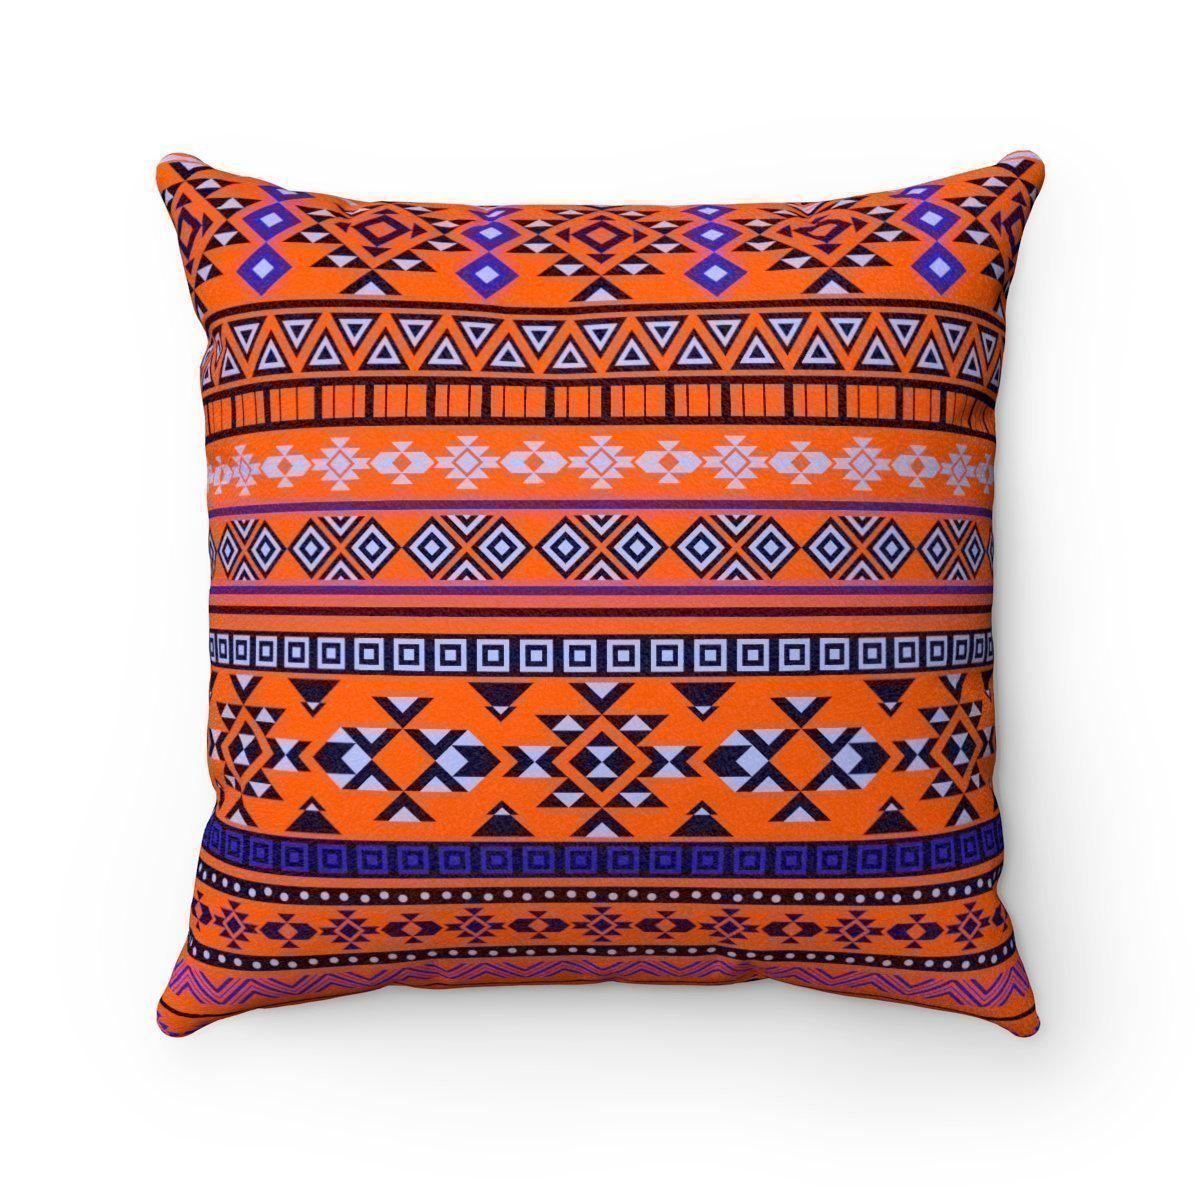 2 in 1 Double sided faux suede ethnic decorative pillow w/insert-Home Decor - Decorative Accents - Pillows & Throws - Decorative Pillows-Maison d'Elite-16x16-Très Elite